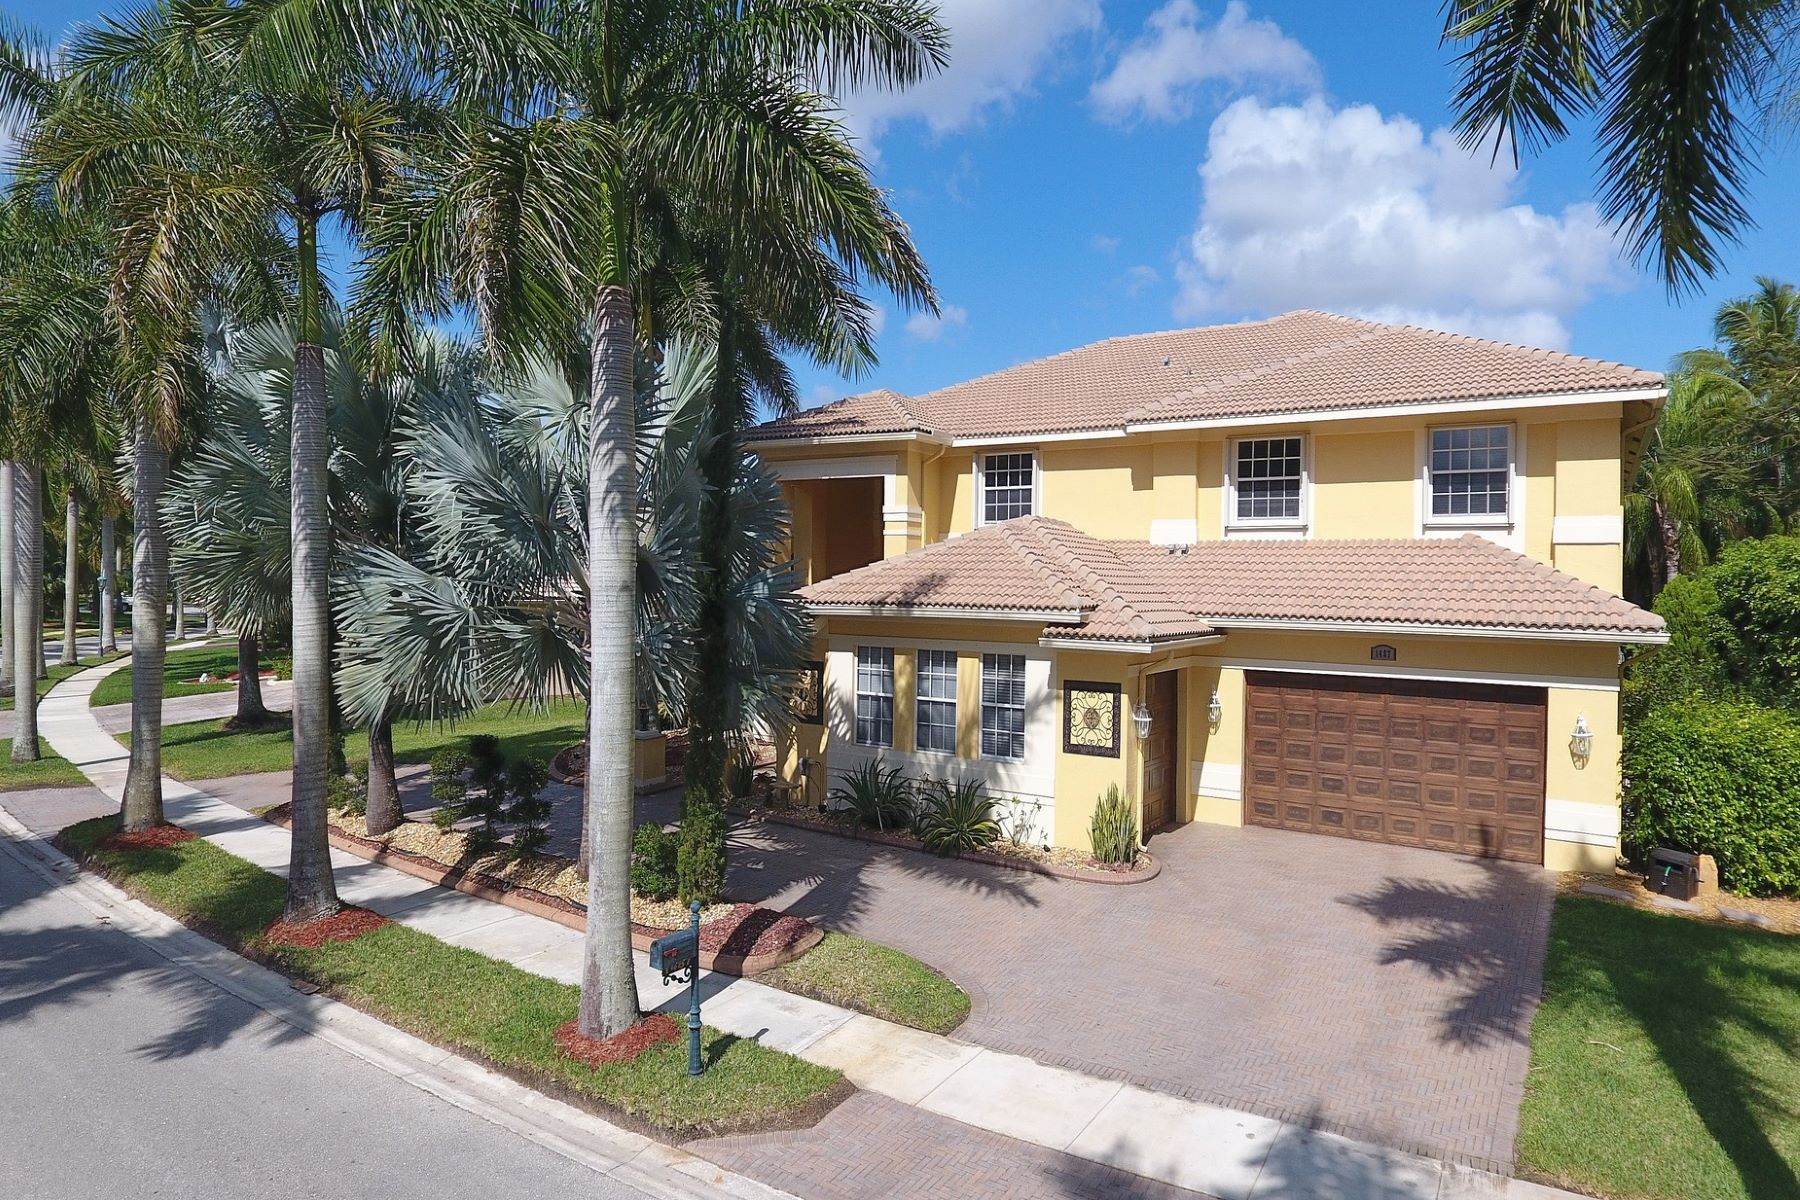 Single Family Home for Sale at 1487 Victoria Isle Dr. Weston, Florida 33327 United States